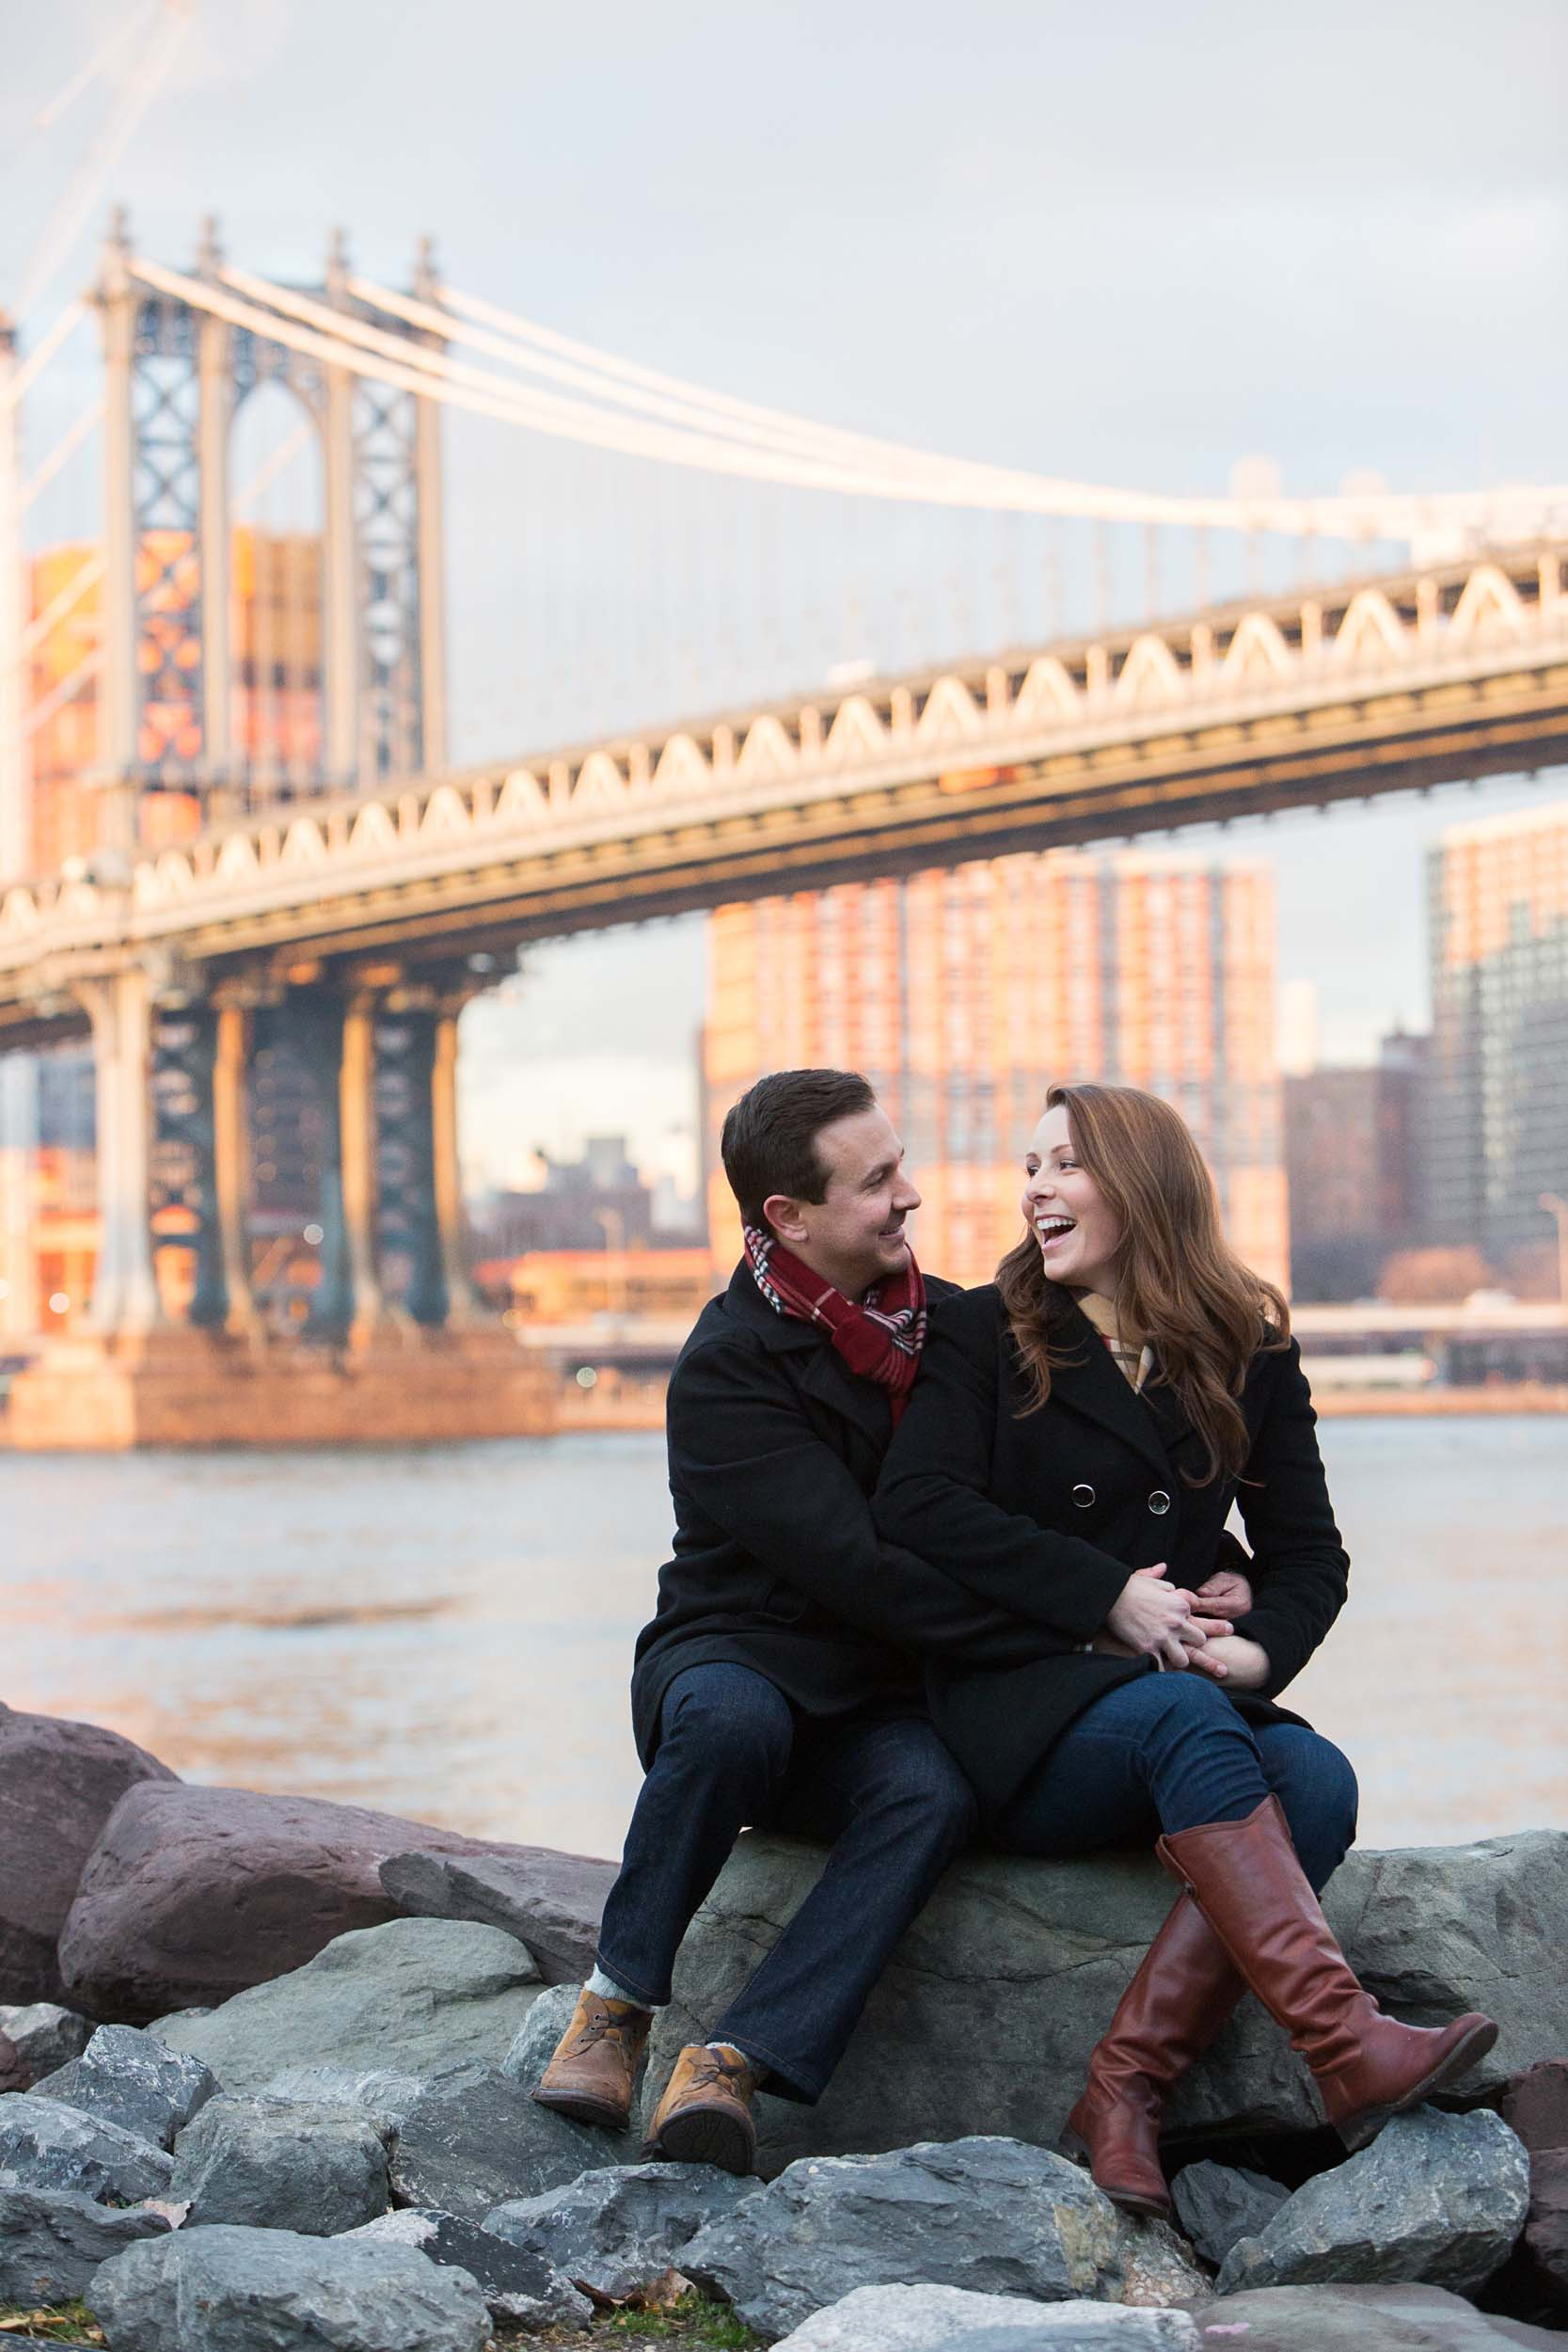 Couple sitting on rocks together laughing with the Brooklyn Bridge in the background in New York City, USA